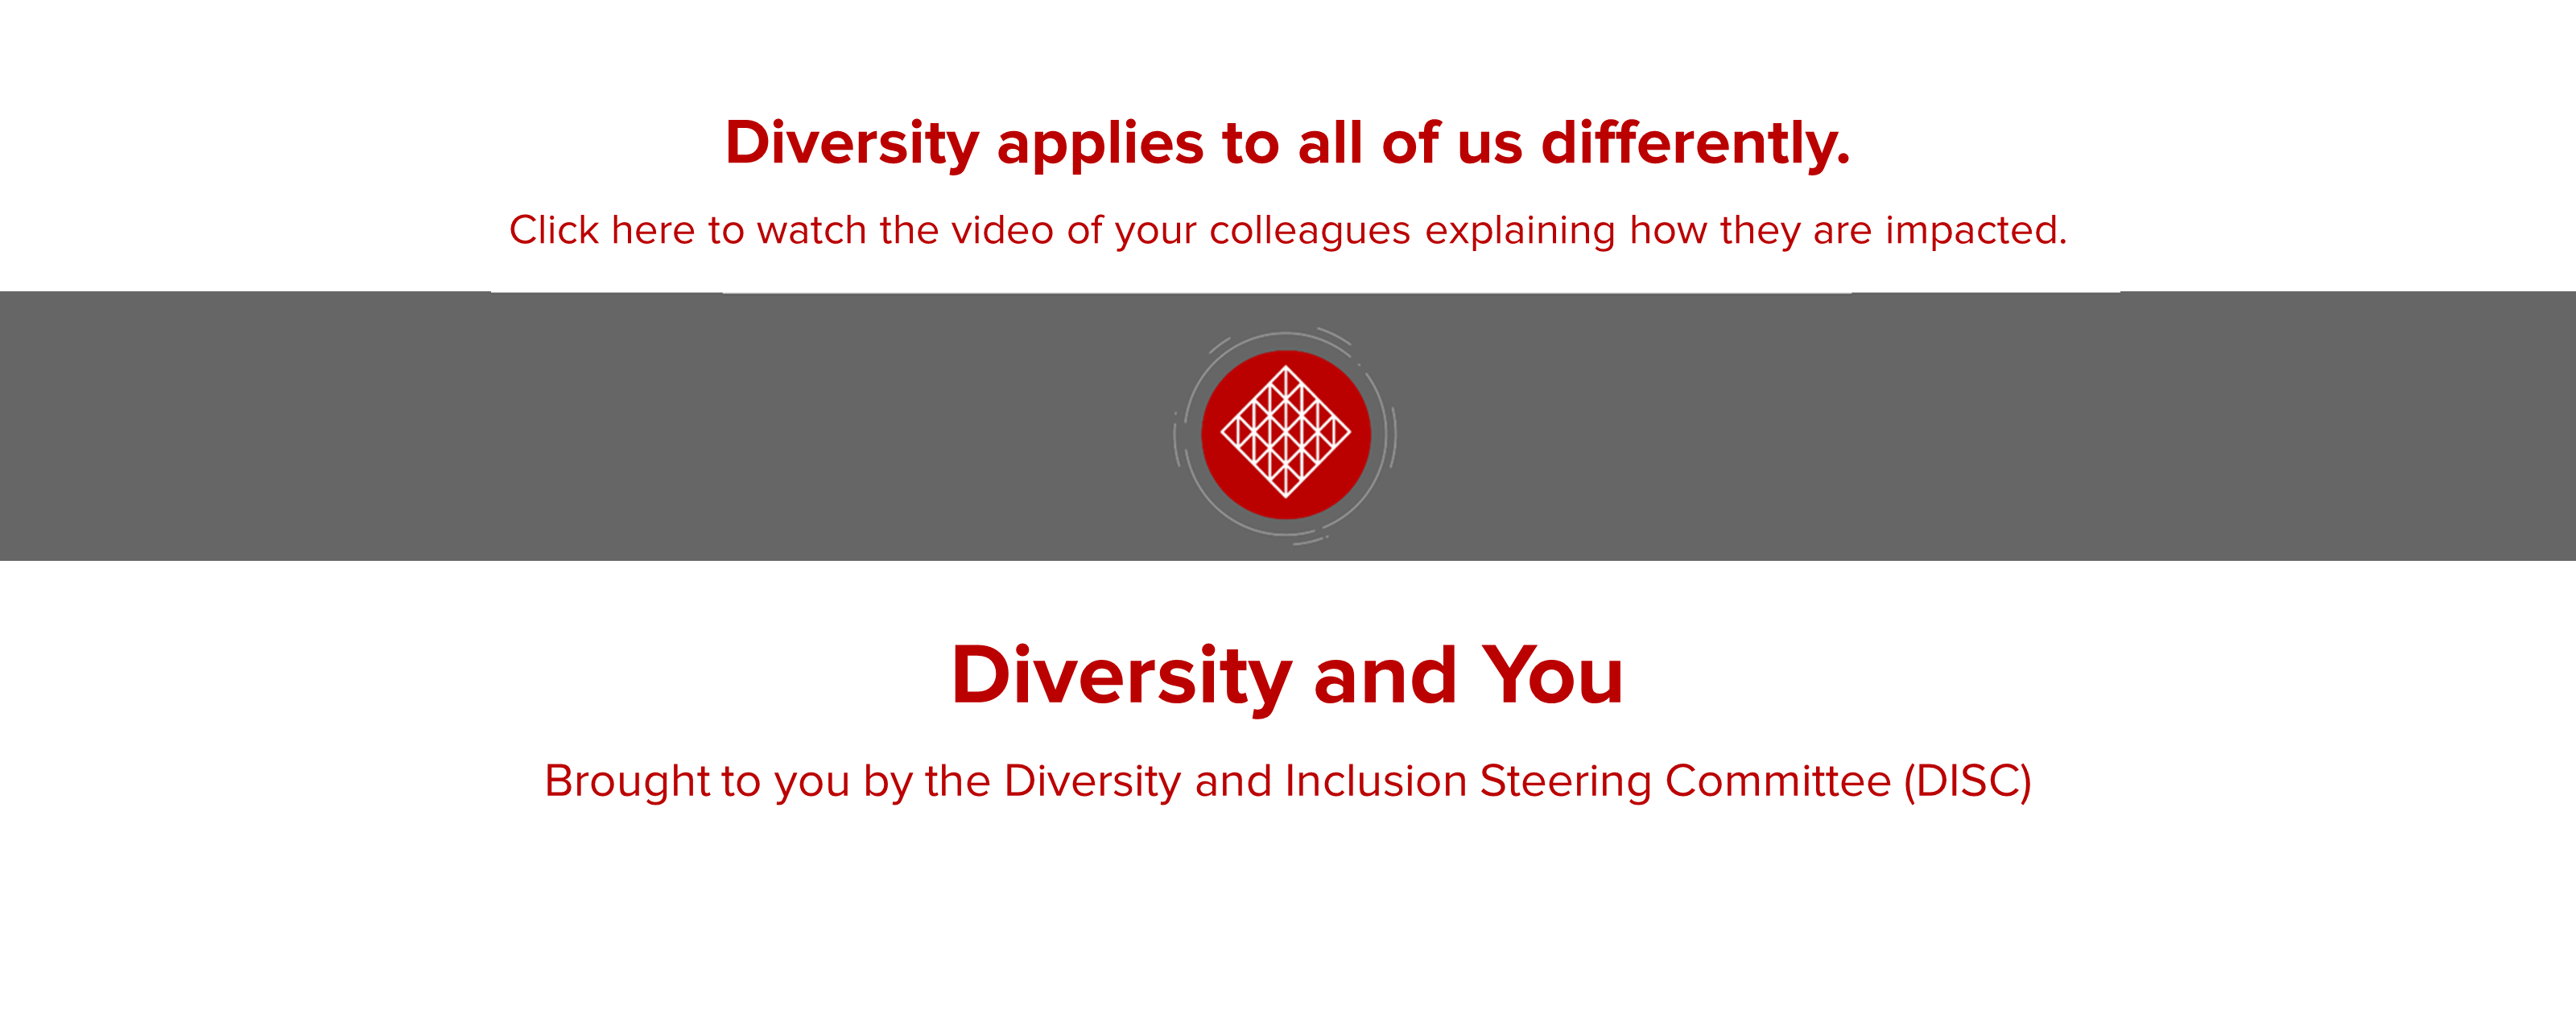 click here to watch diversity video